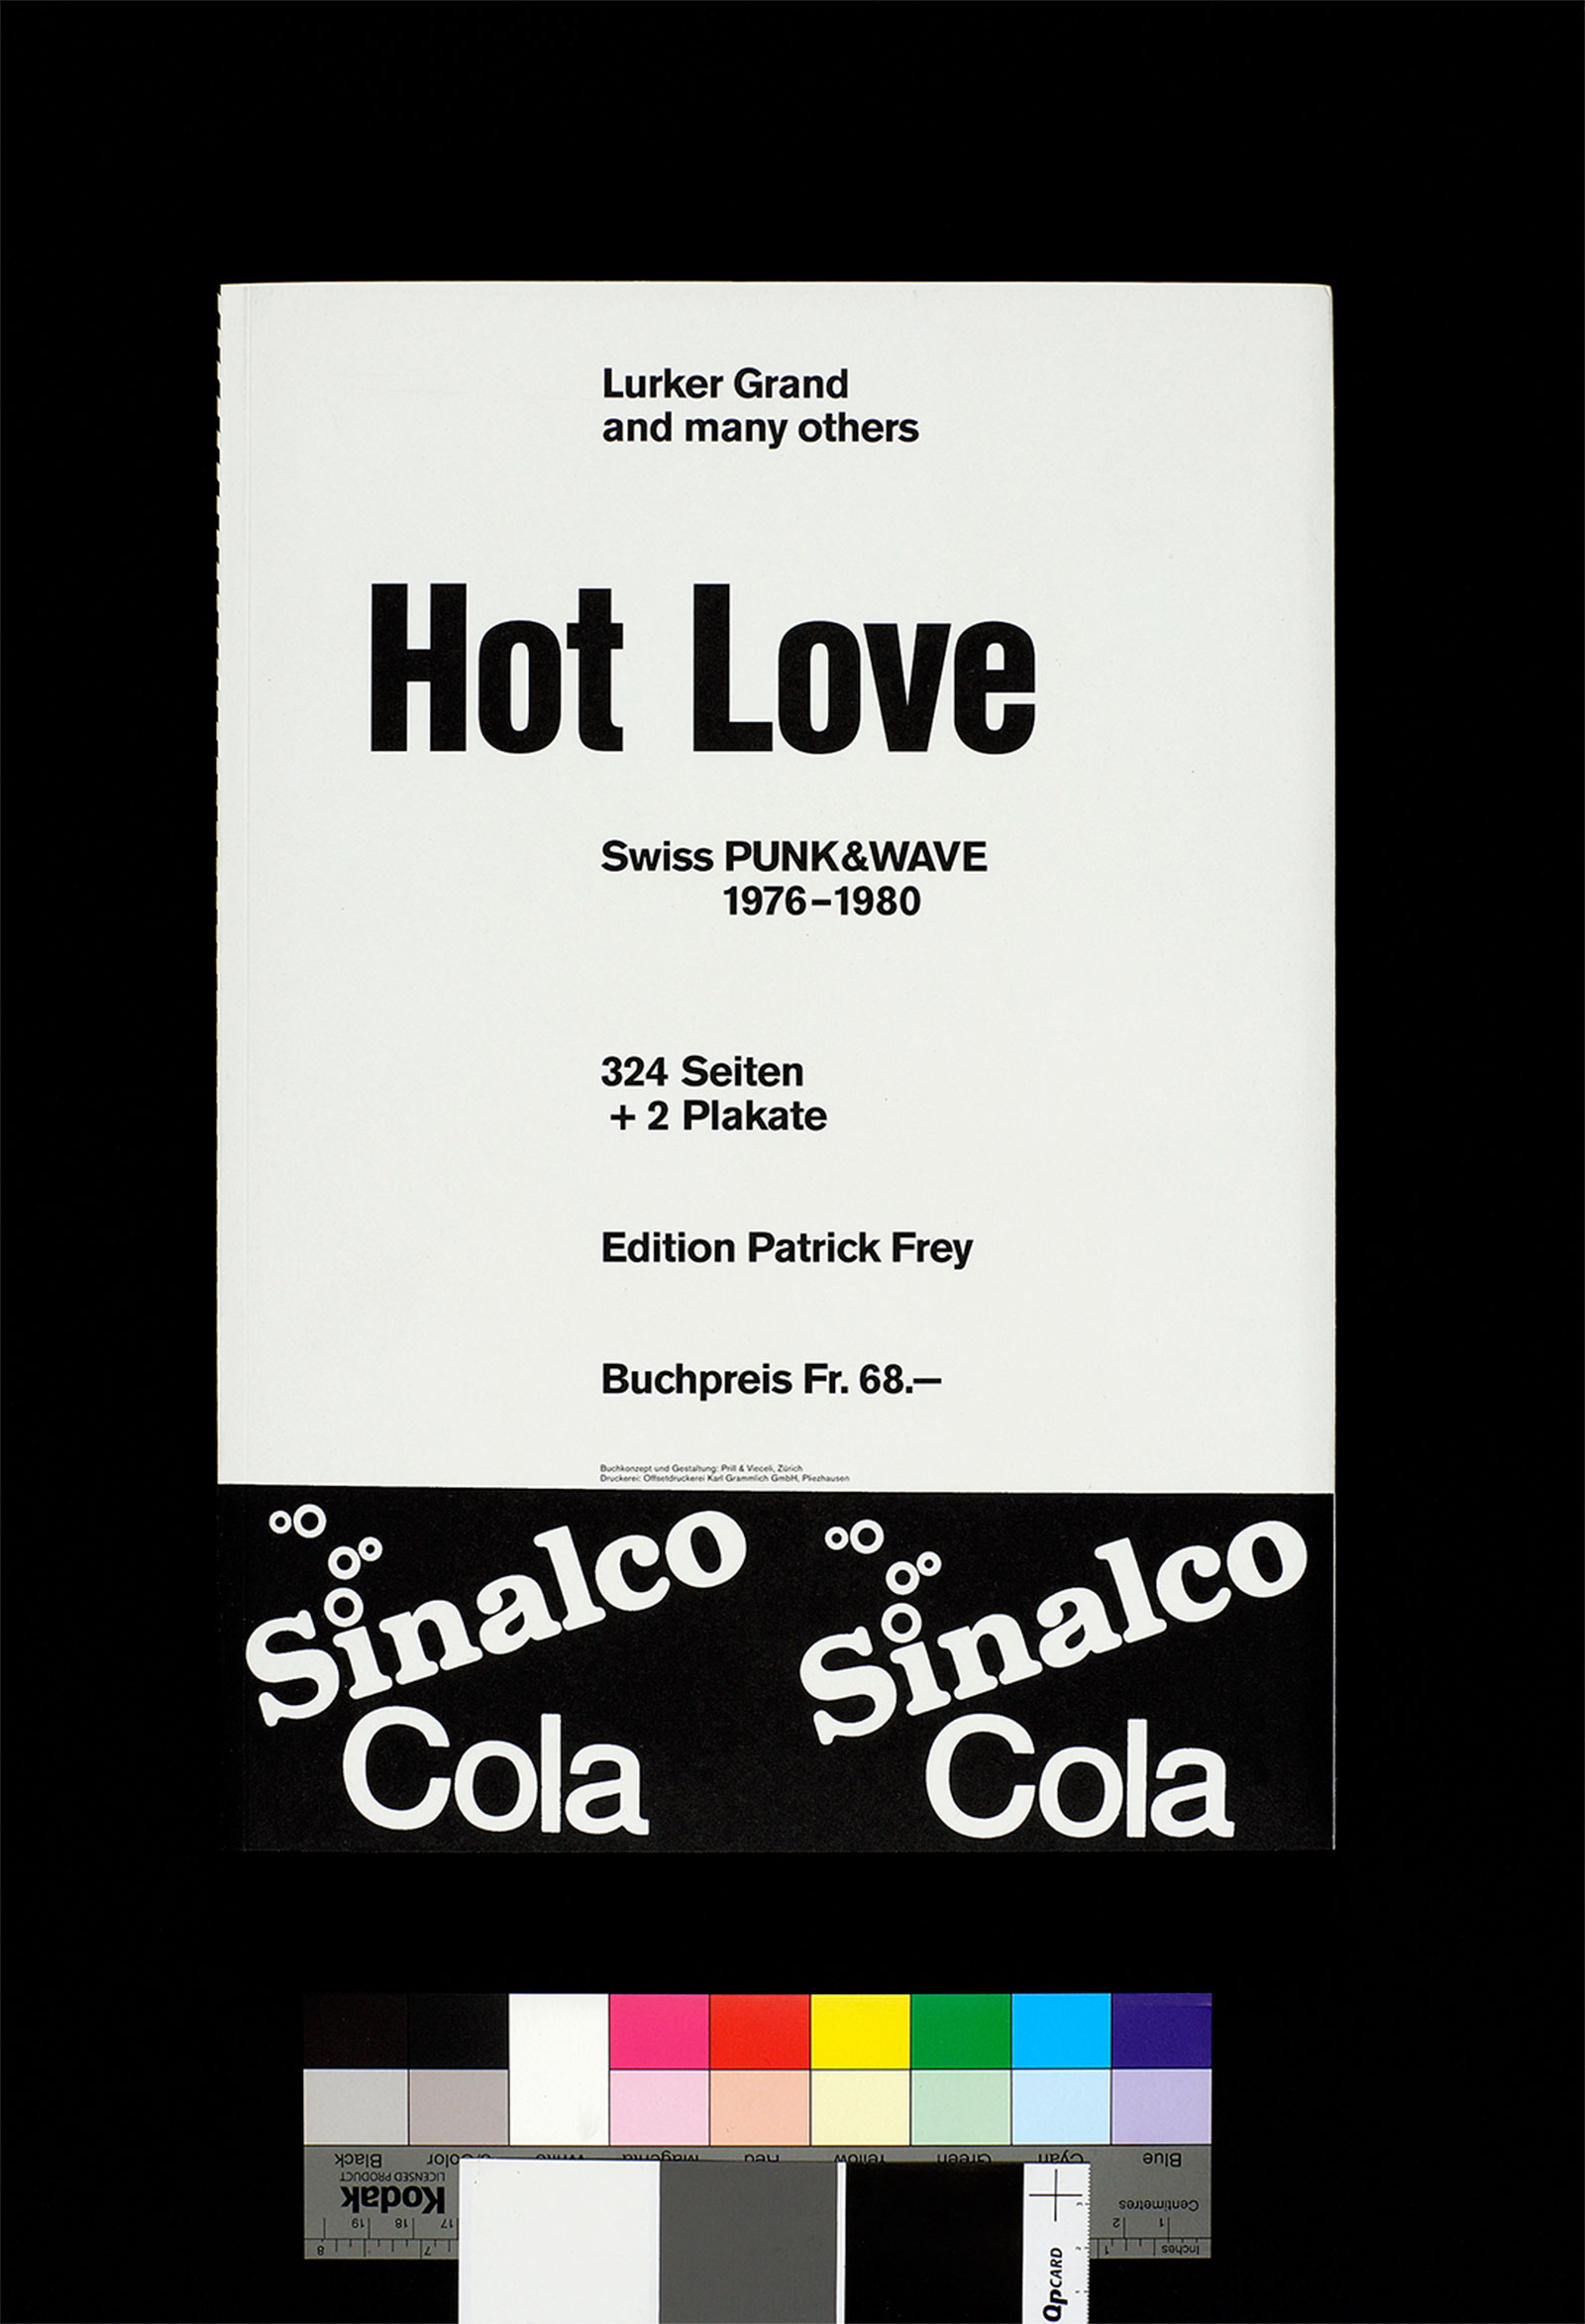 Hot Love. Swiss Punk & Wave 1976-1980. Fotografie: Raphael Hefti